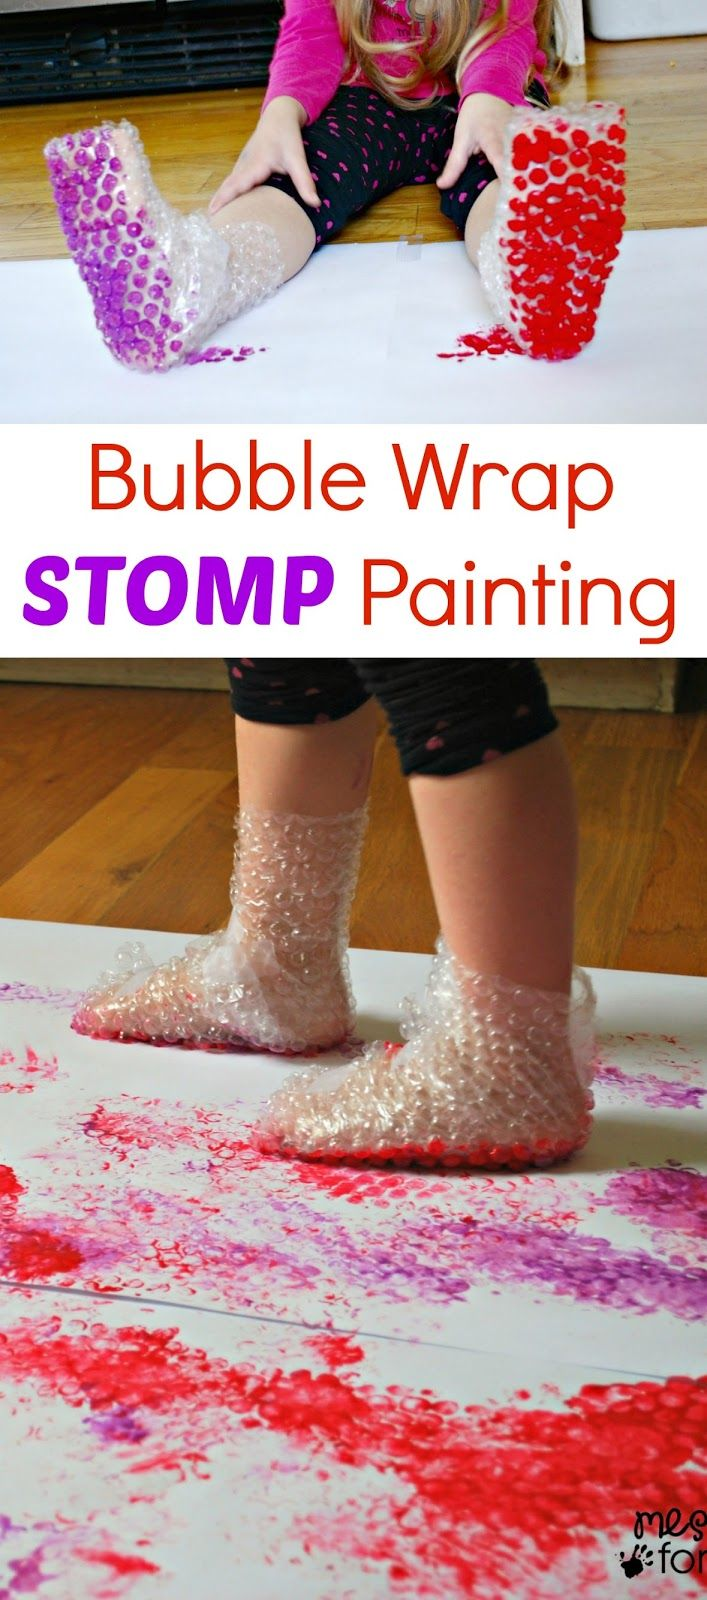 "make some bubble wrap ""boots"" then dip in paint and stomp around to create art!"